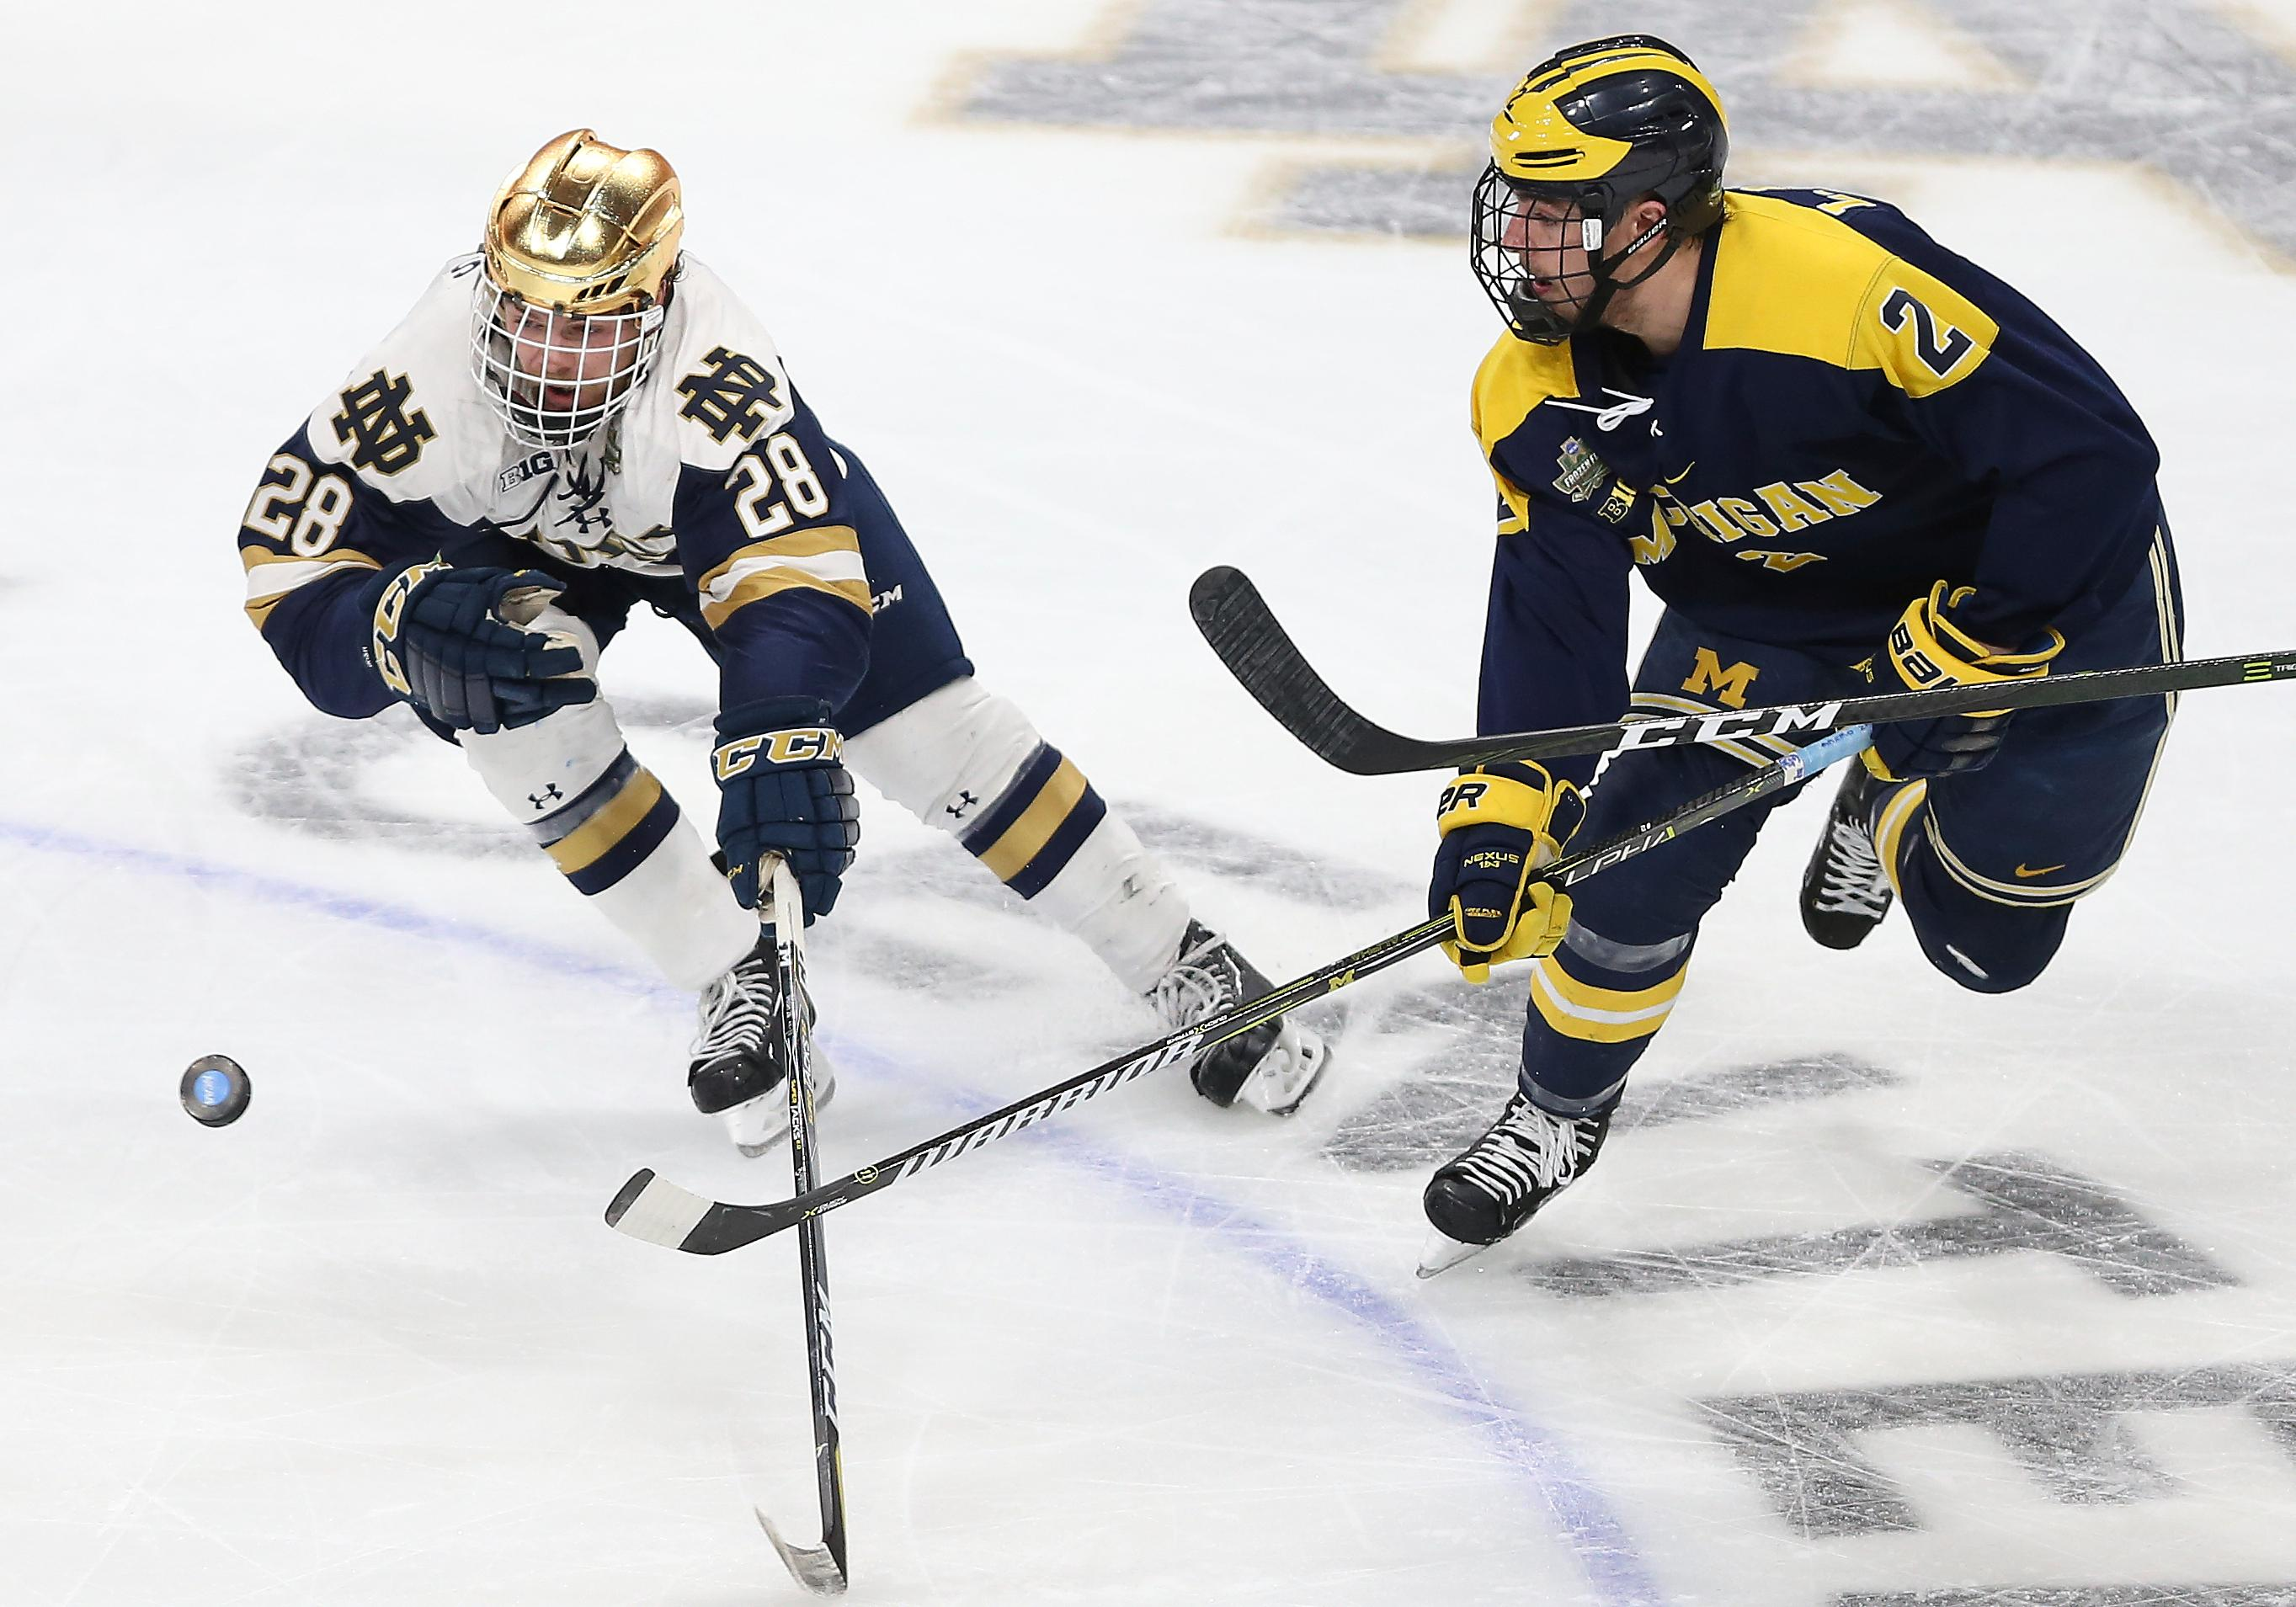 Notre Dame's Bo Brauer (28) reaches for the puck in front of Michigan's Luke Martin (2) during the second period of a semifinal in the NCAA men's Frozen Four college hockey tournament Thursday, April 5, 2018, in St. Paul, Minn. (AP Photo/Stacy Bengs)